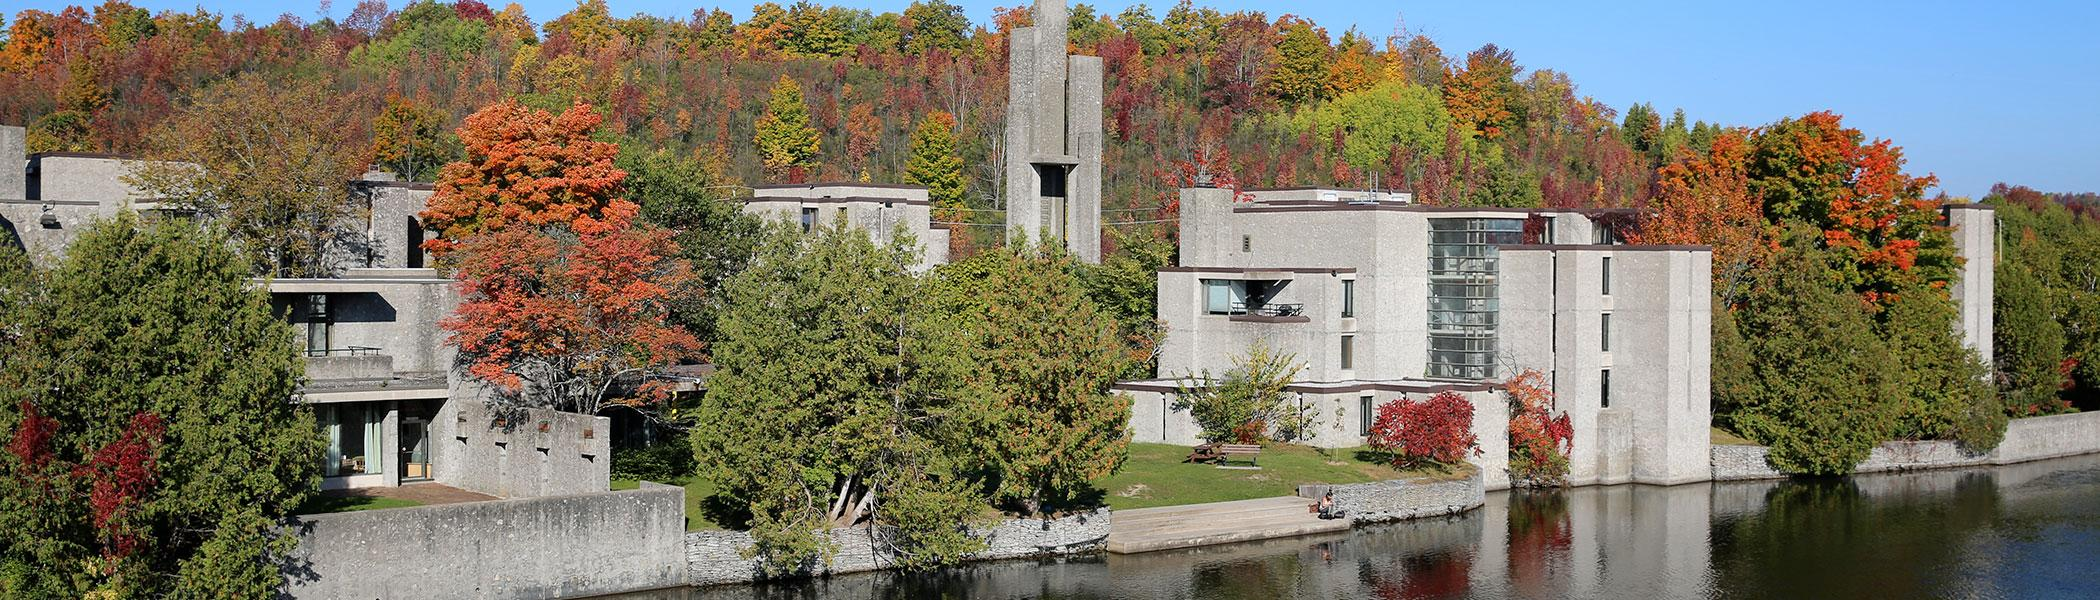 Riverside view of Champlain College